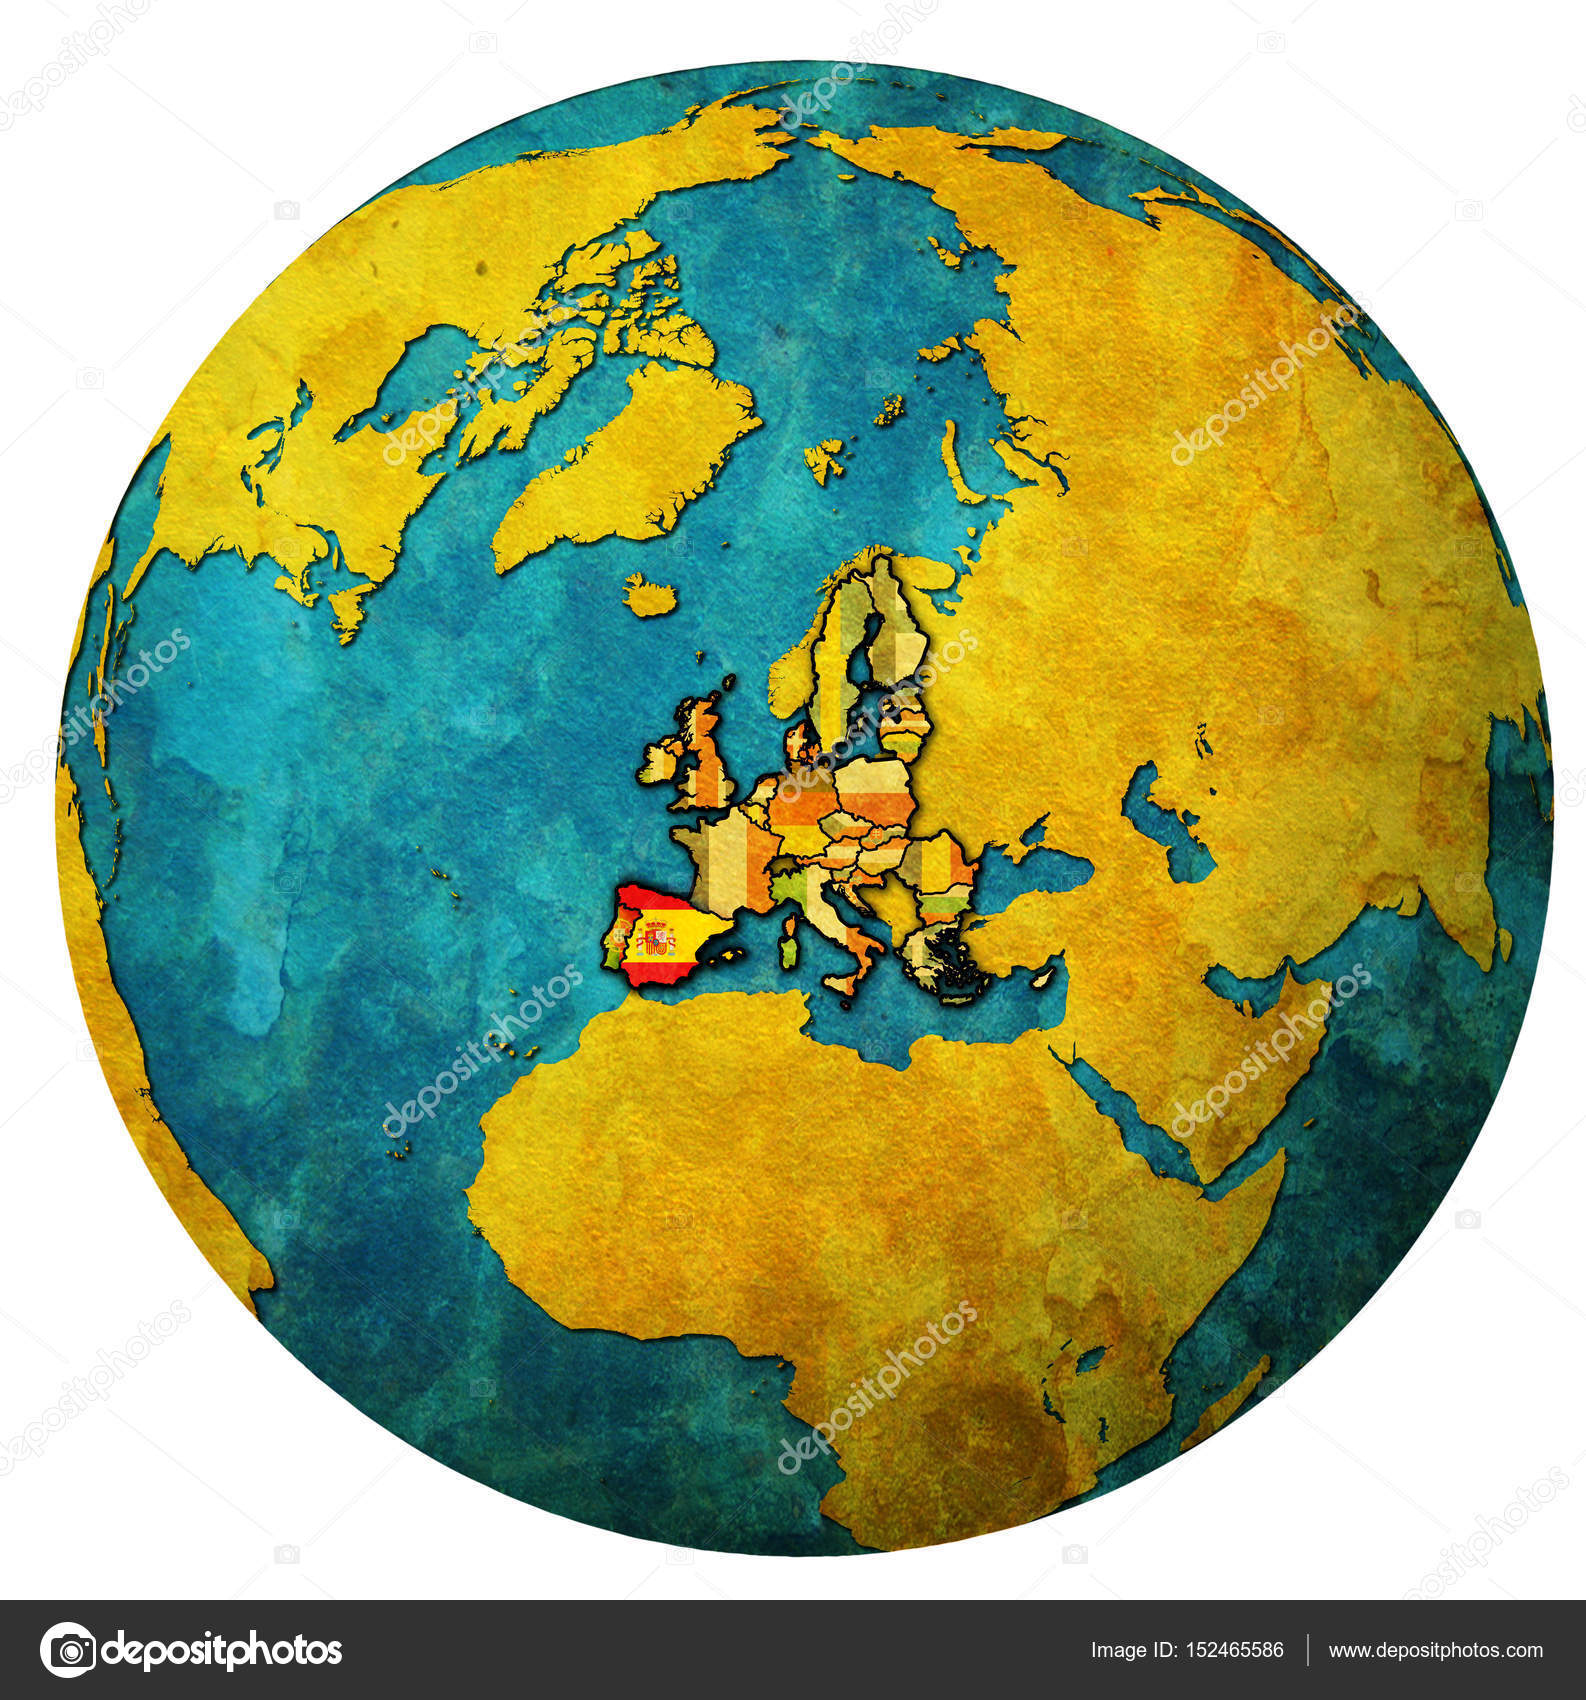 spain territory with flag over globe map u2014 stock photo michal812